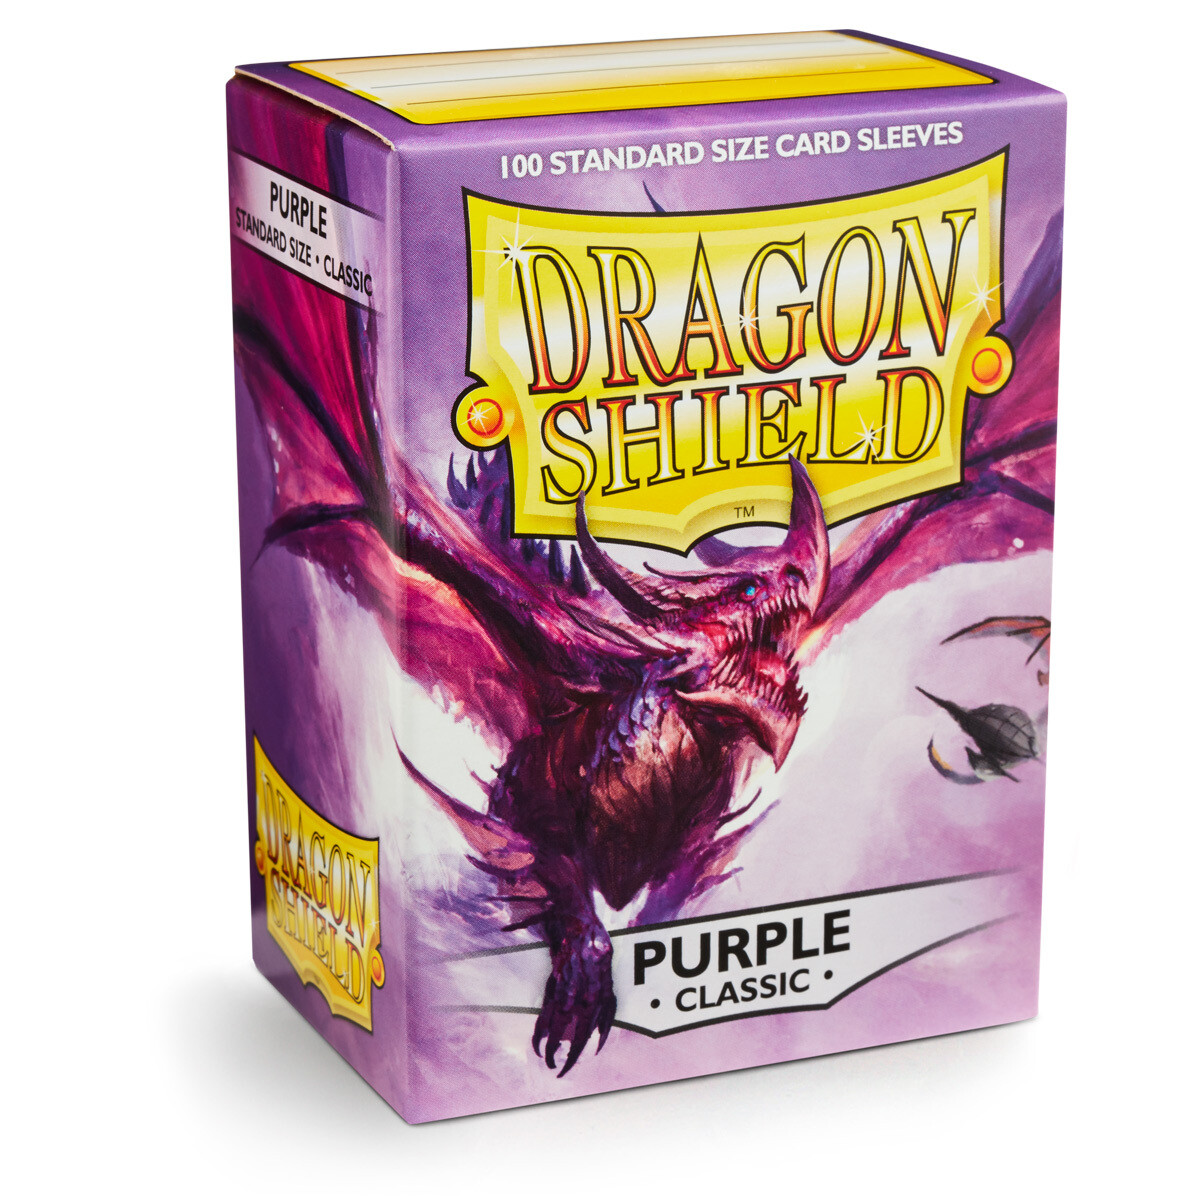 Dragon Shield 100 Sleeves - Purple